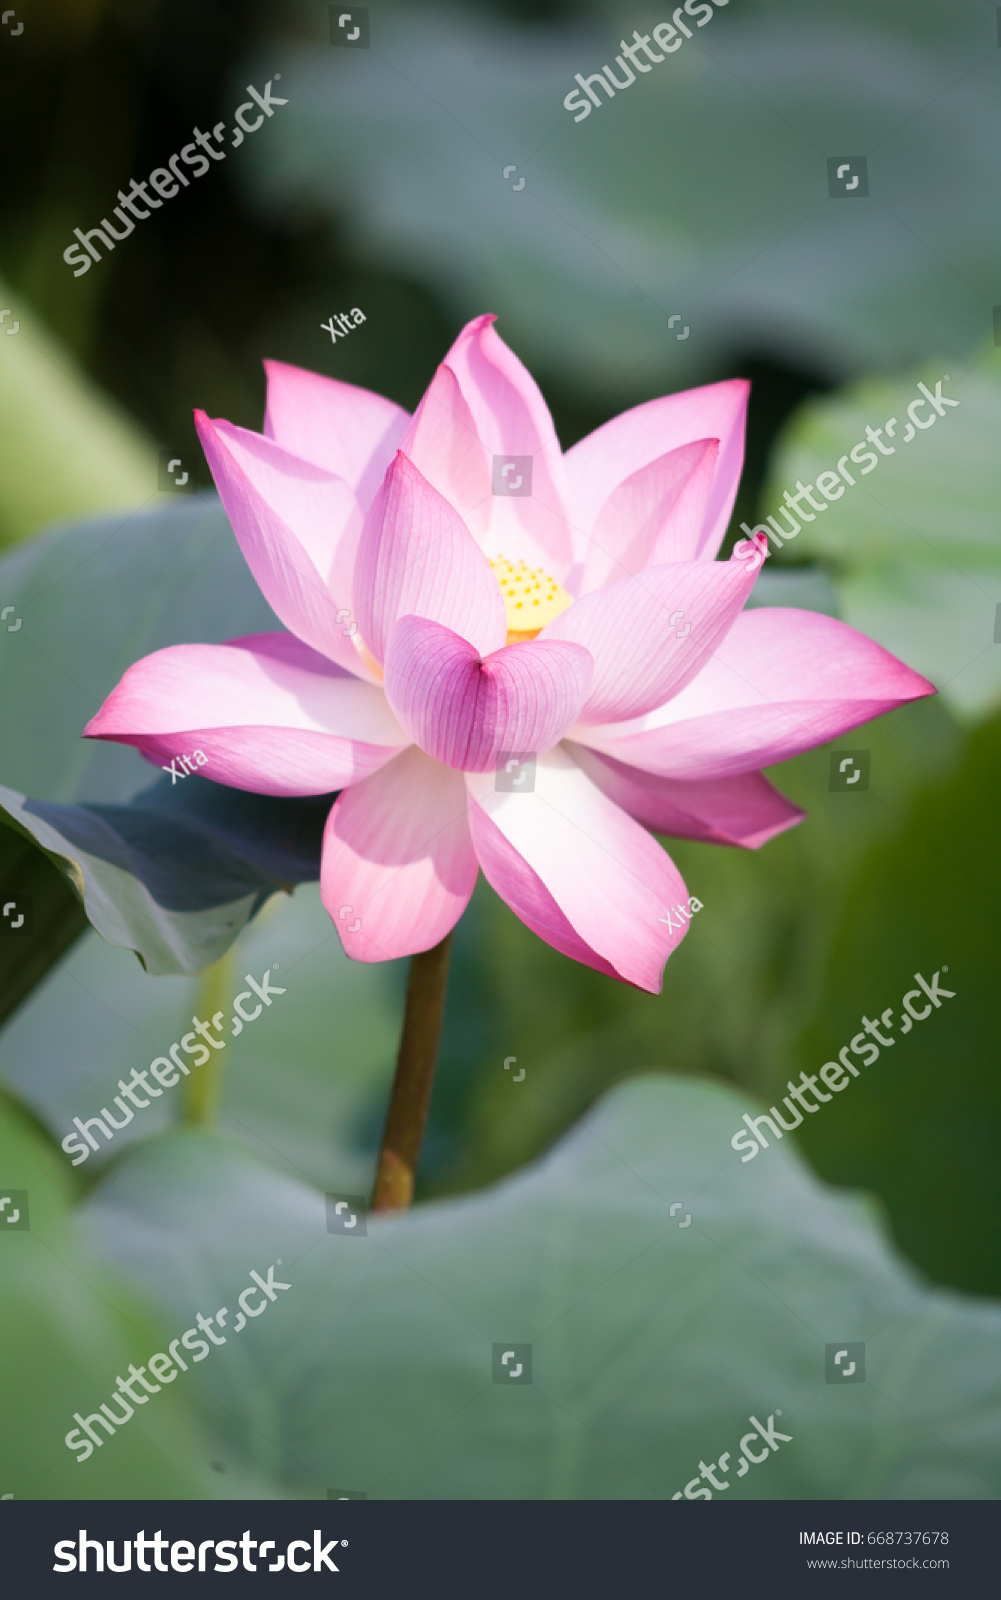 Beautiful lotus flower background lotus flower stock photo 668737678 beautiful lotus flower background lotus flower is the symbol of the buddha natural background izmirmasajfo Images